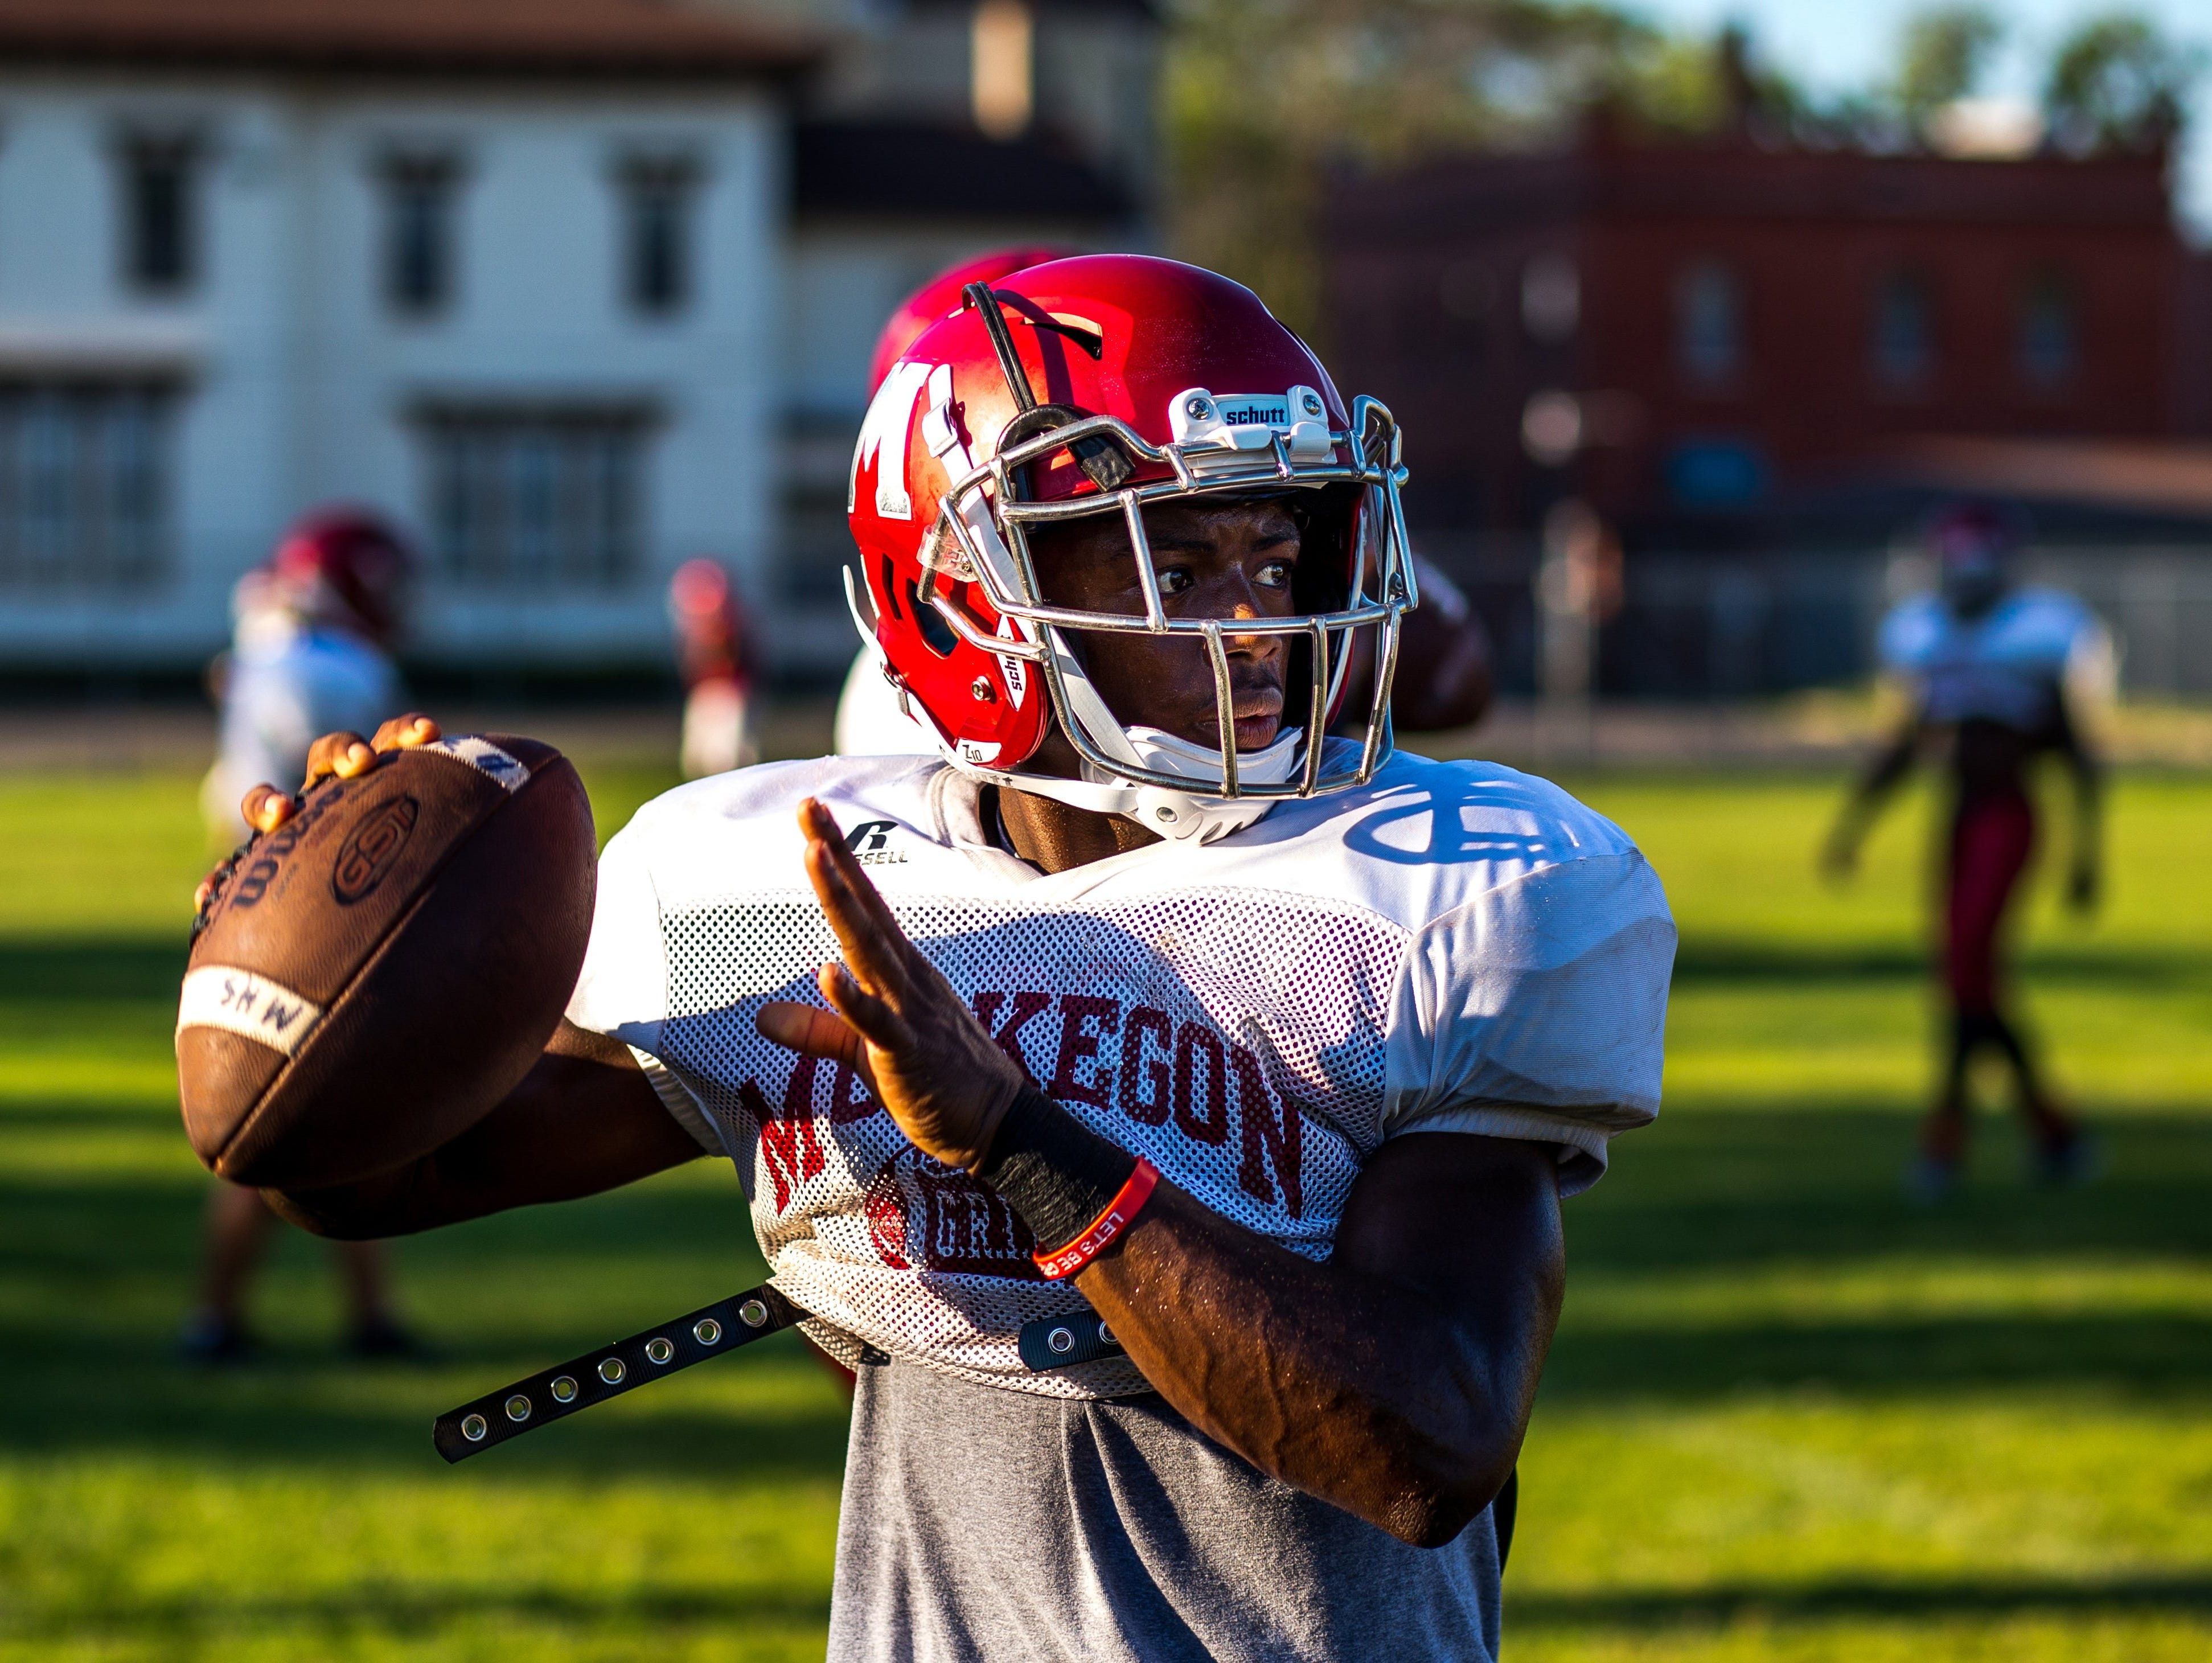 Muskegon senior quarterback Kalil Pimpleton practices Tuesday, Aug. 16, 2016, in Muskegon, Mich.